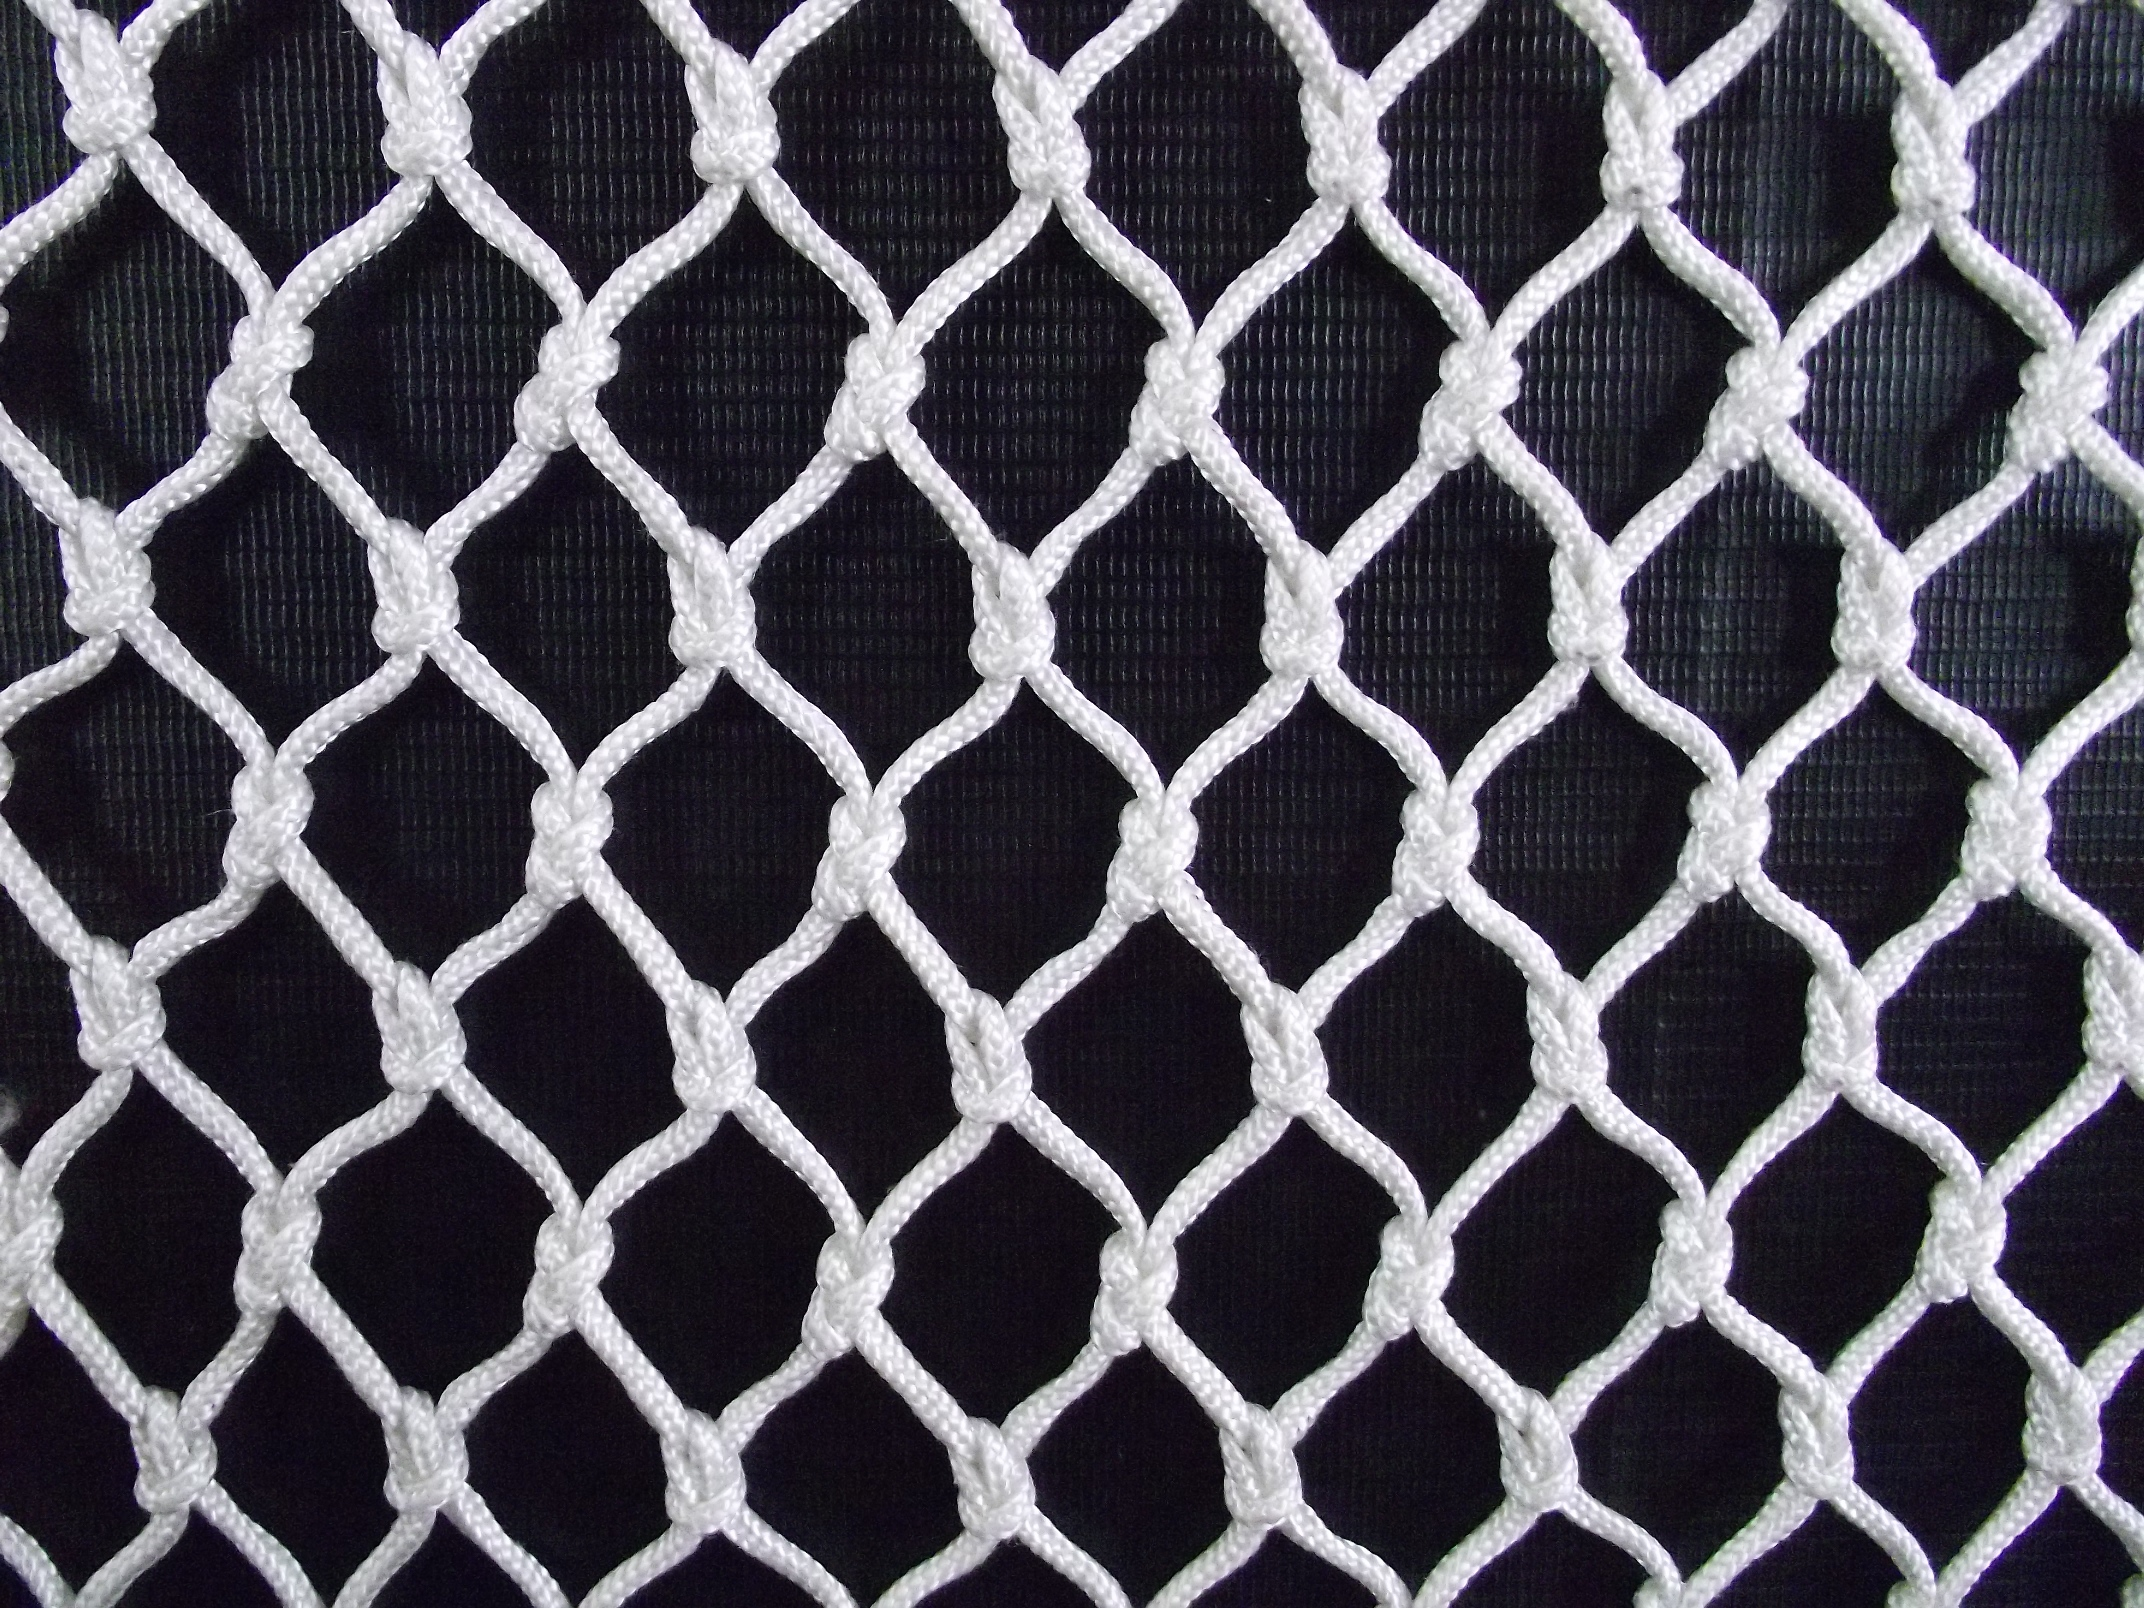 PP Braided Net